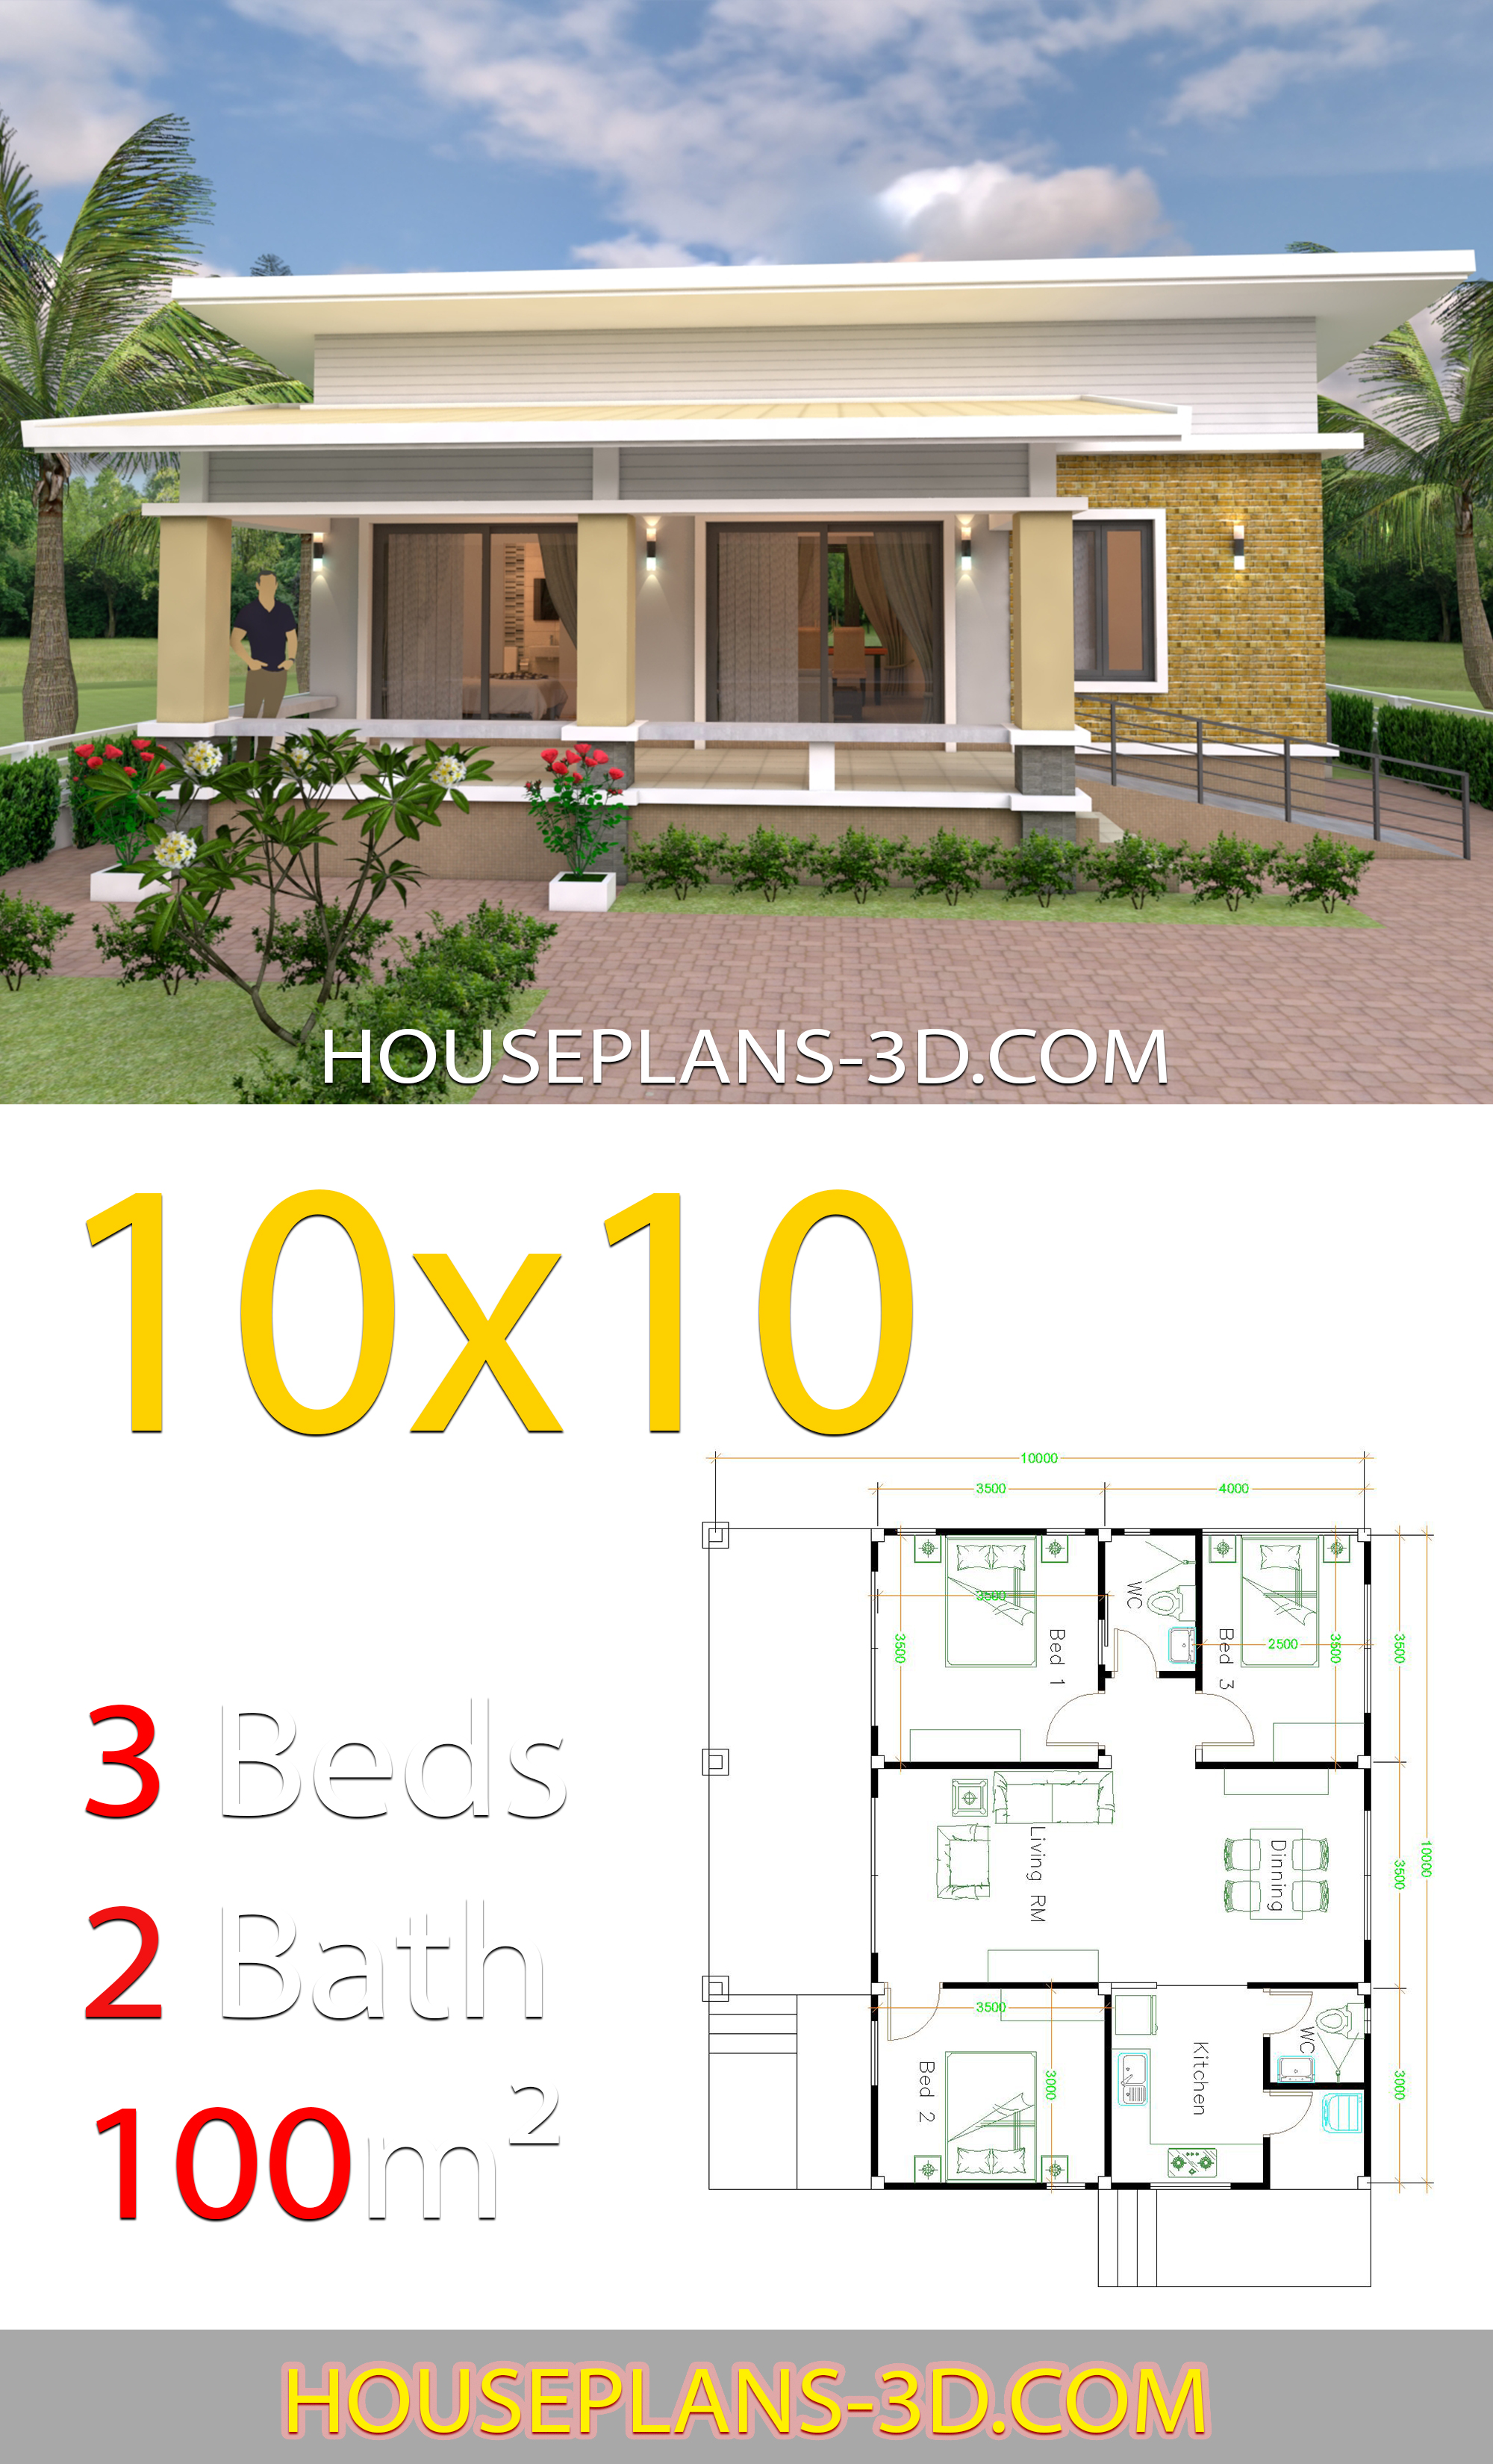 10x10 Room Design: House Design 10x10 With 3 Bedrooms Full Interior